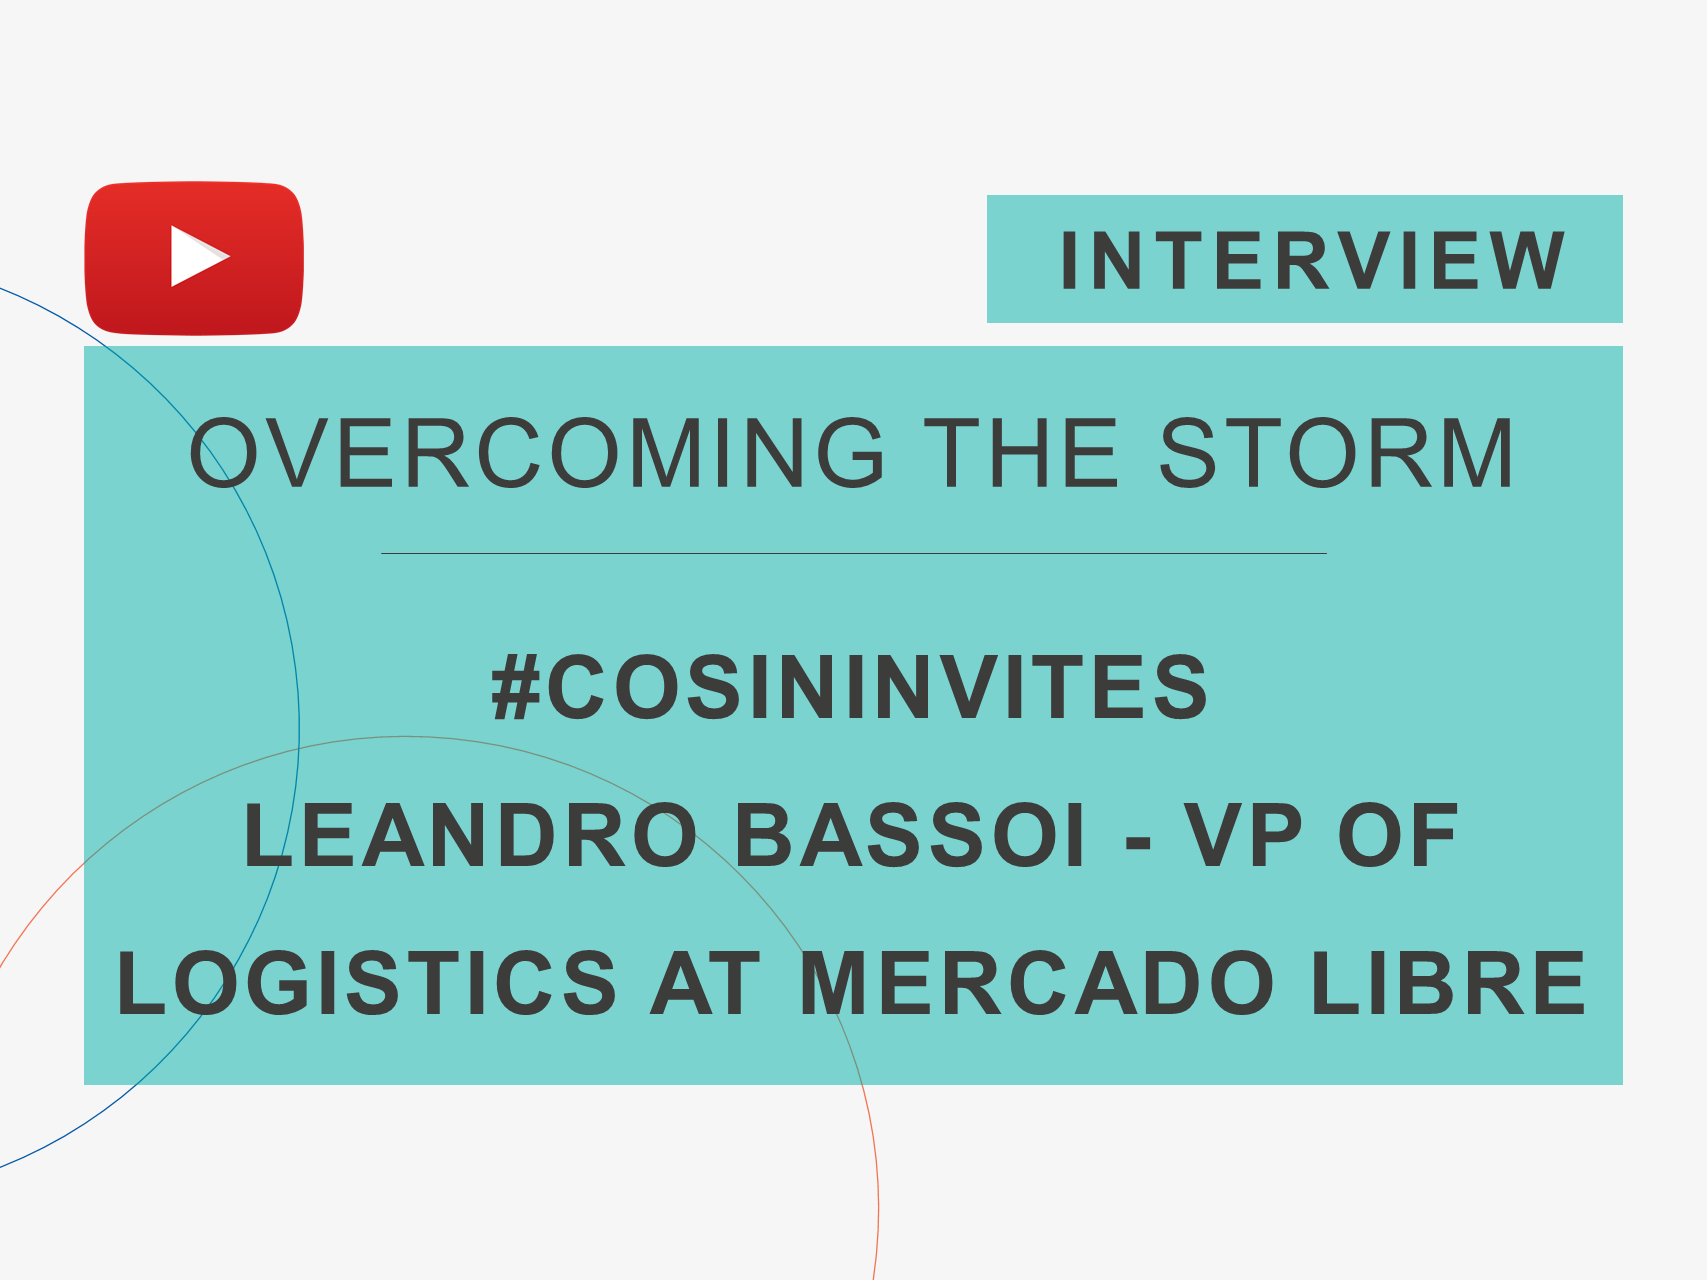 Cover of the interview with Leandro Bassoi of the series 'Overcoming the Tempest', by Cosin Consulting, about the Mercado Livre Logistics